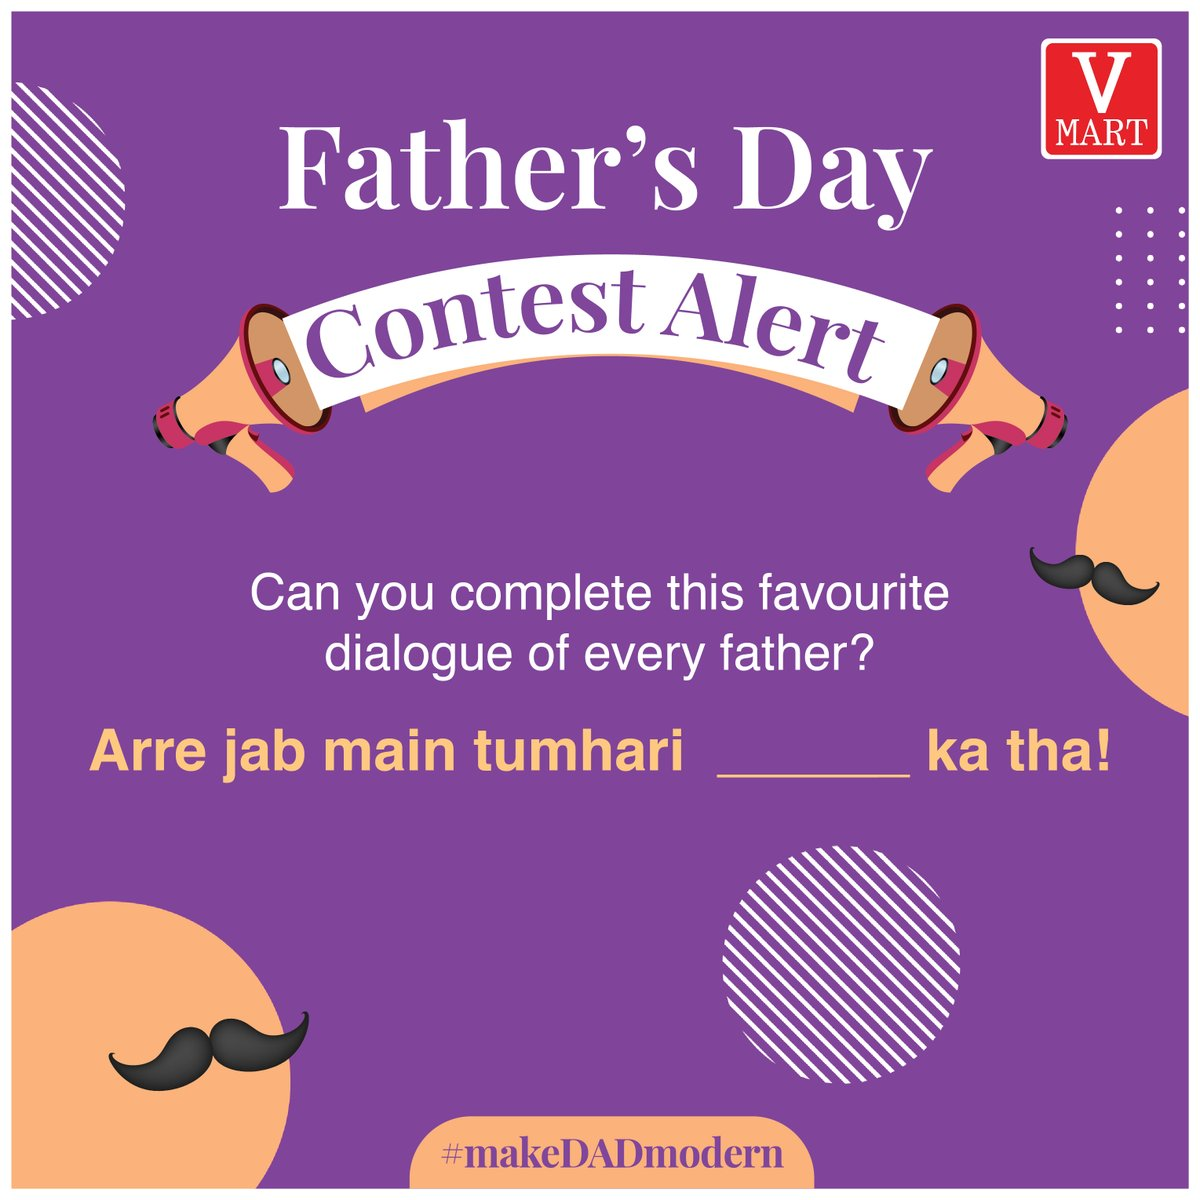 We're sure you can complete these dialogues you've heard all your life! . To Participate, follow these steps and you might win a voucher worth Rs 500.  1) Comment the right answer and other favourite dialogues of your father.  2) Follow us on Twitter 3) Like and Share this post https://t.co/pYejYG2N2V